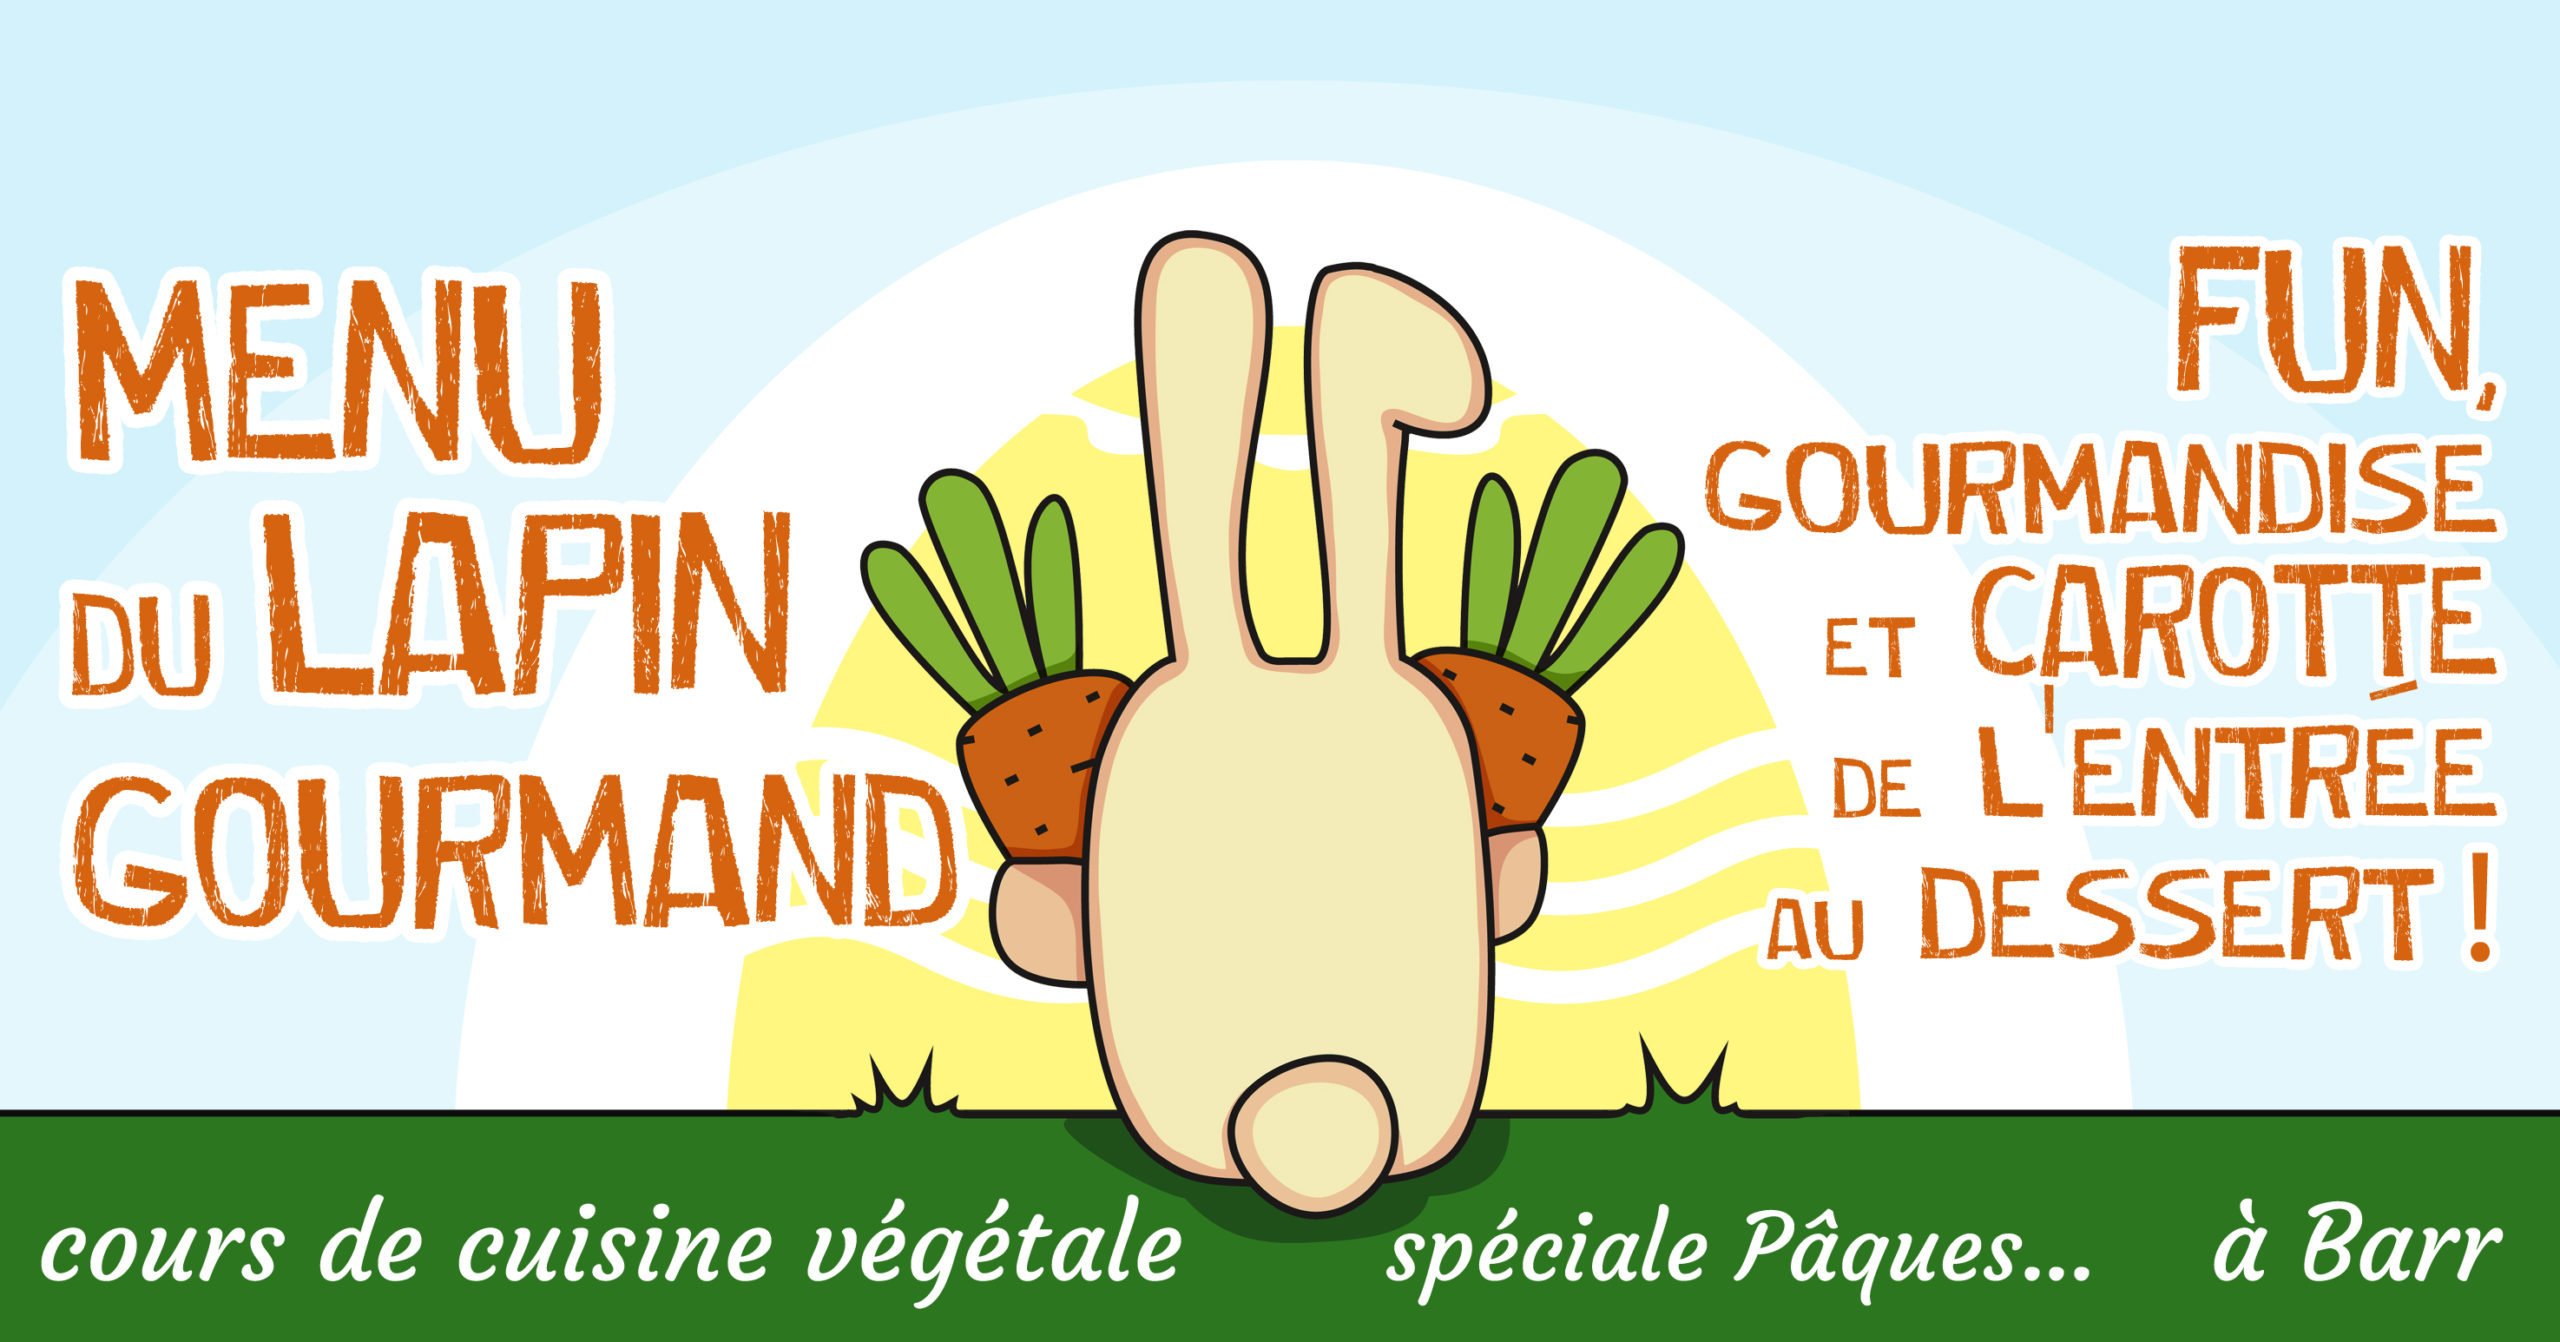 Menu du Lapin Gourmand